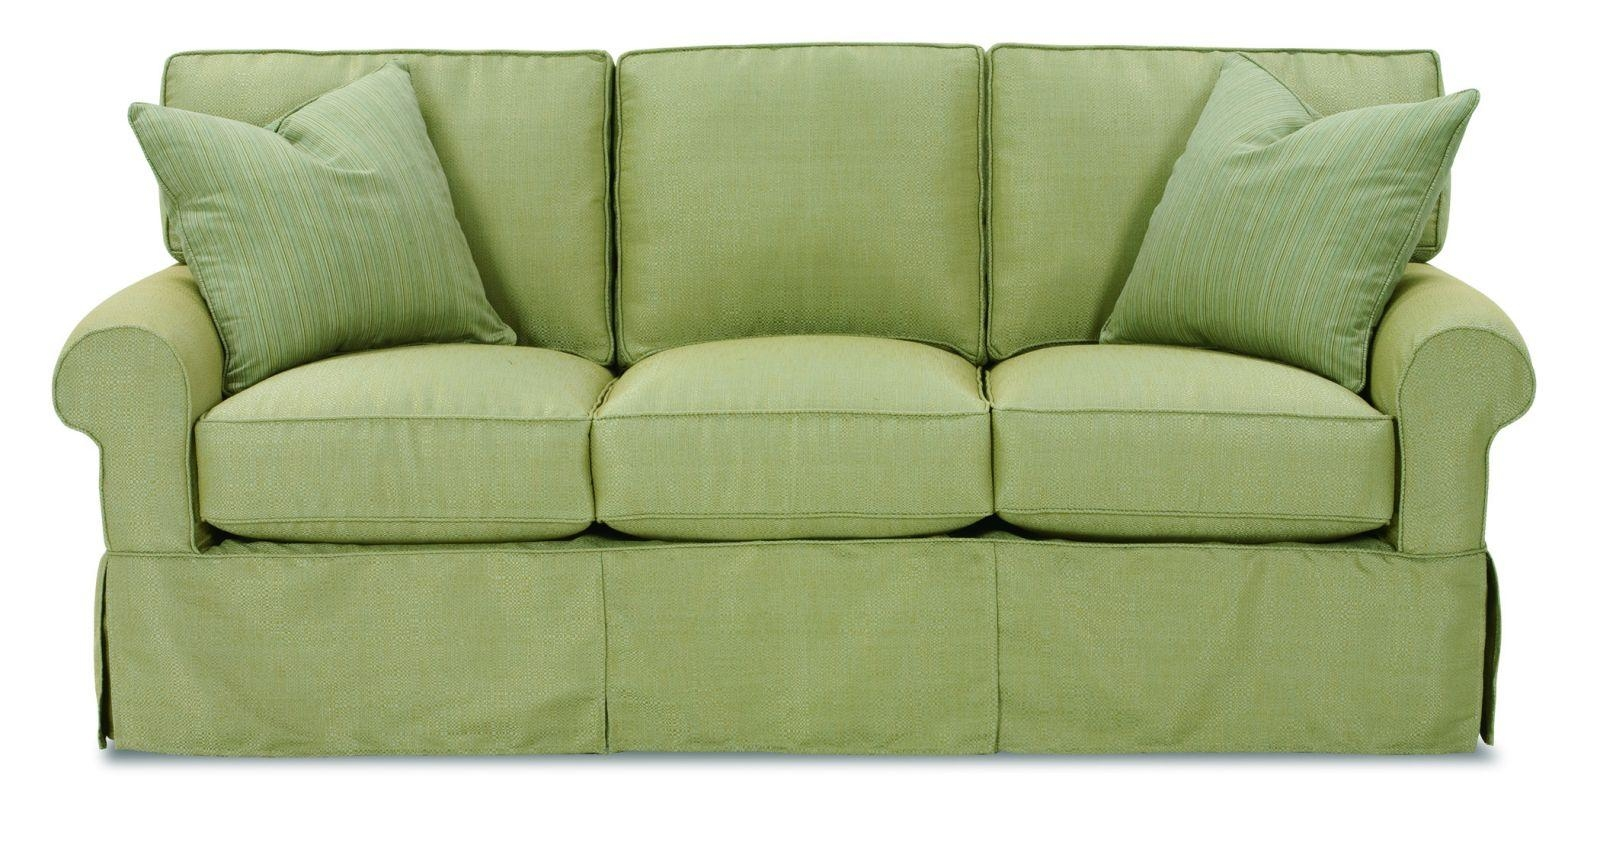 3 cushion sofa slipcovers for couches www